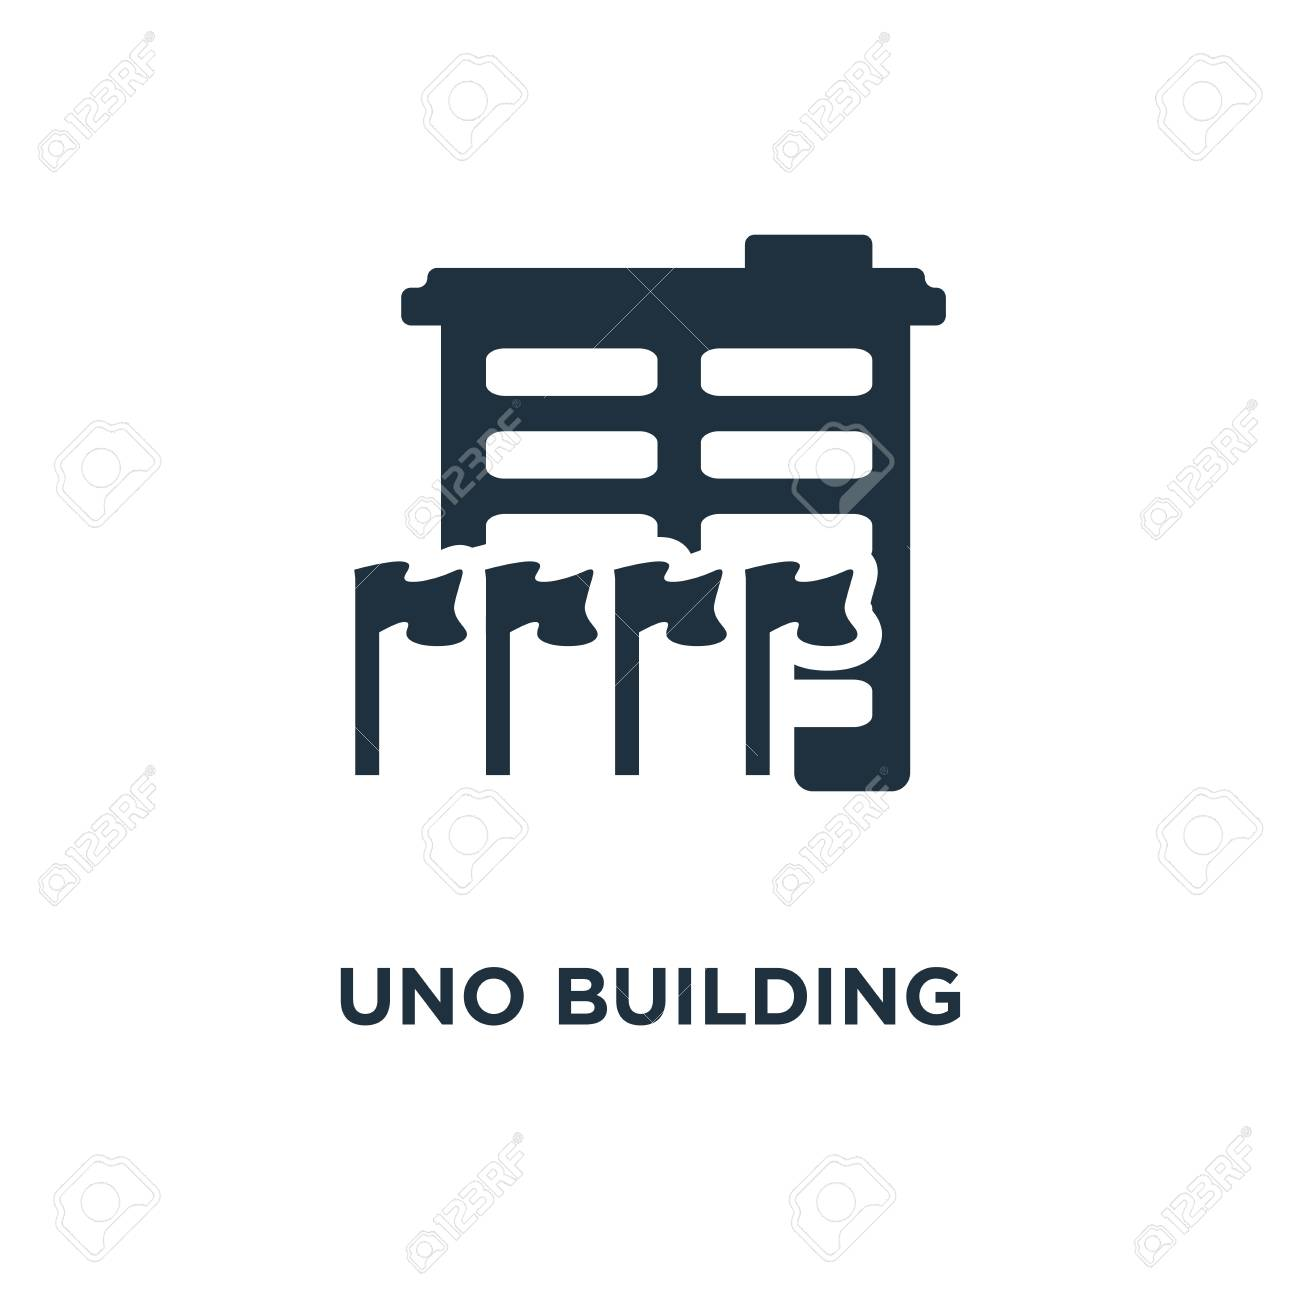 UNO Building icon. Black filled vector illustration. UNO Building symbol on white background. Can be used in web and mobile. - 112278184